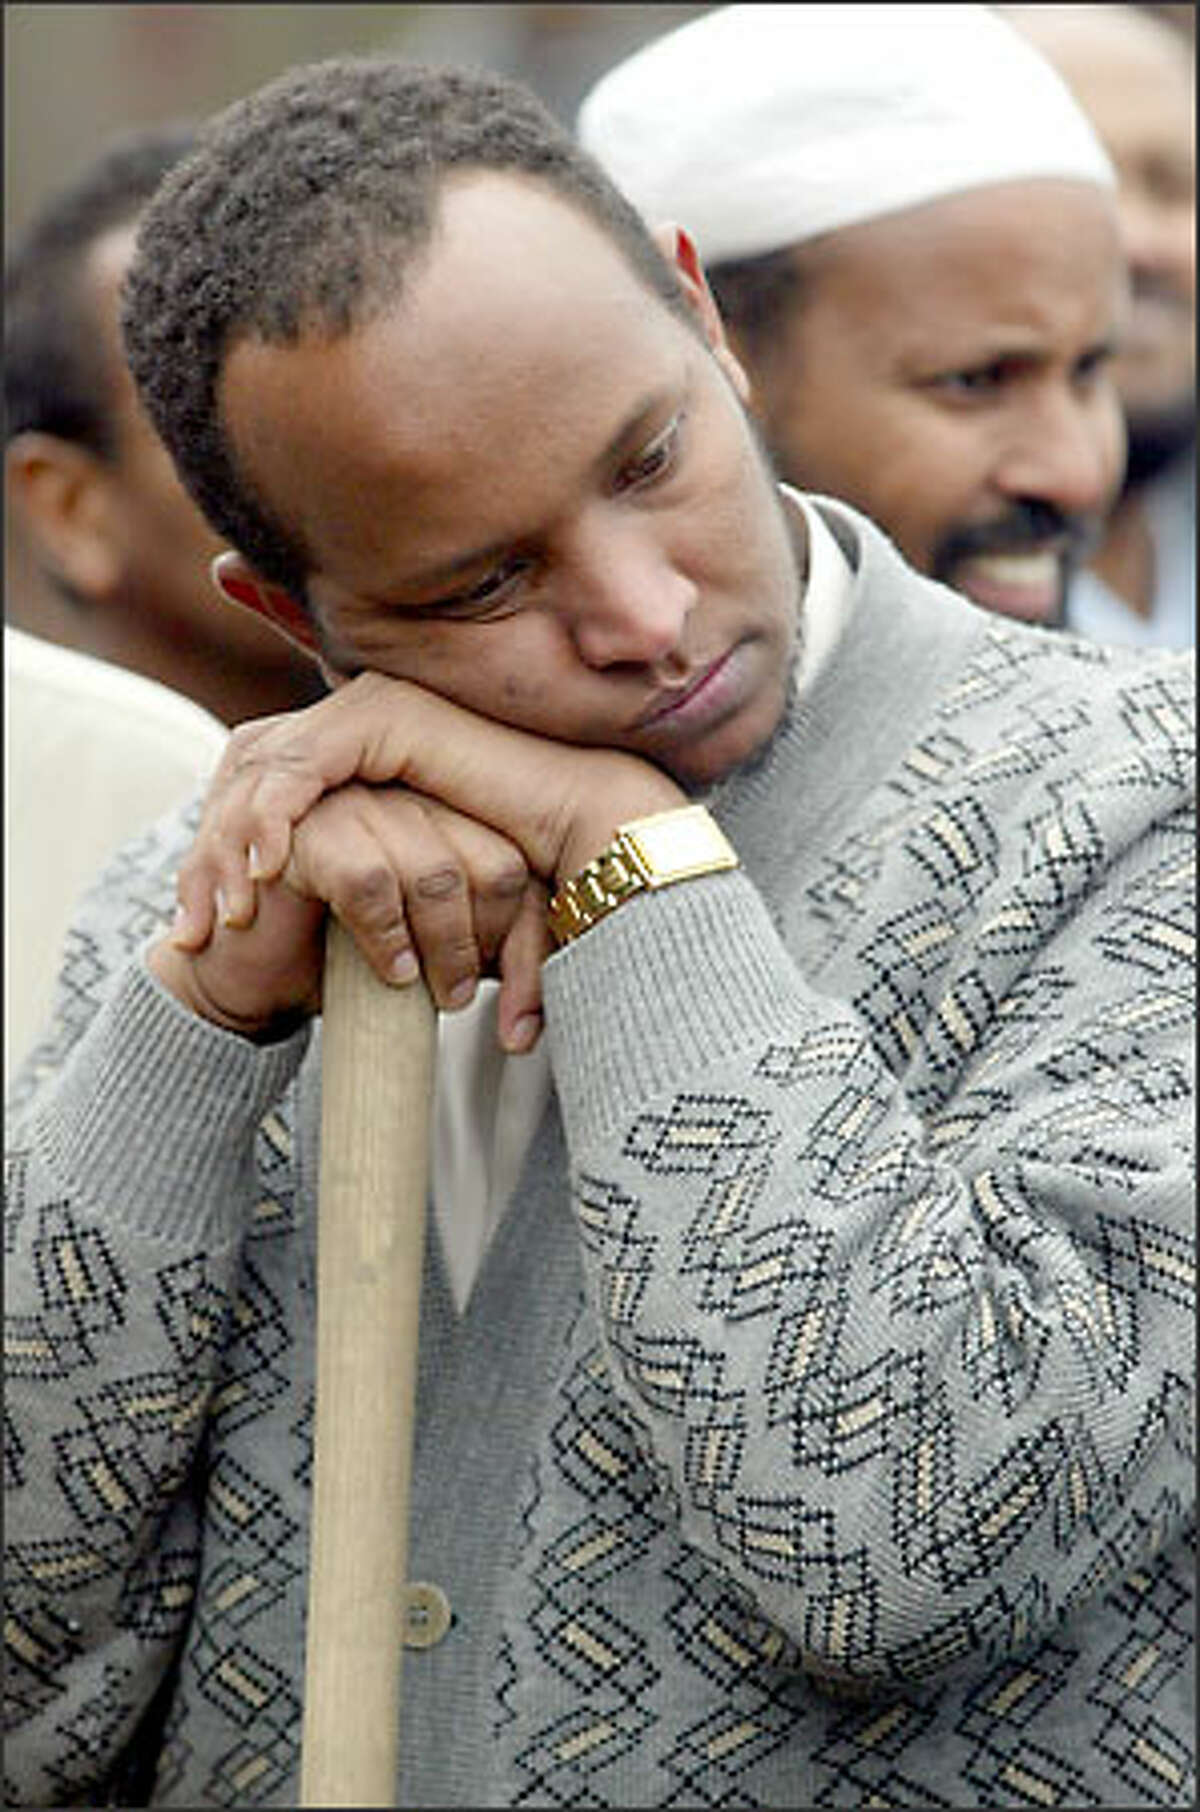 Abdi Ashoor leans on a shovel as he waits to be among the first to place earth on the grave of his slain cousin, Hassan Farah, who was shot to death Saturday while driving his cab.